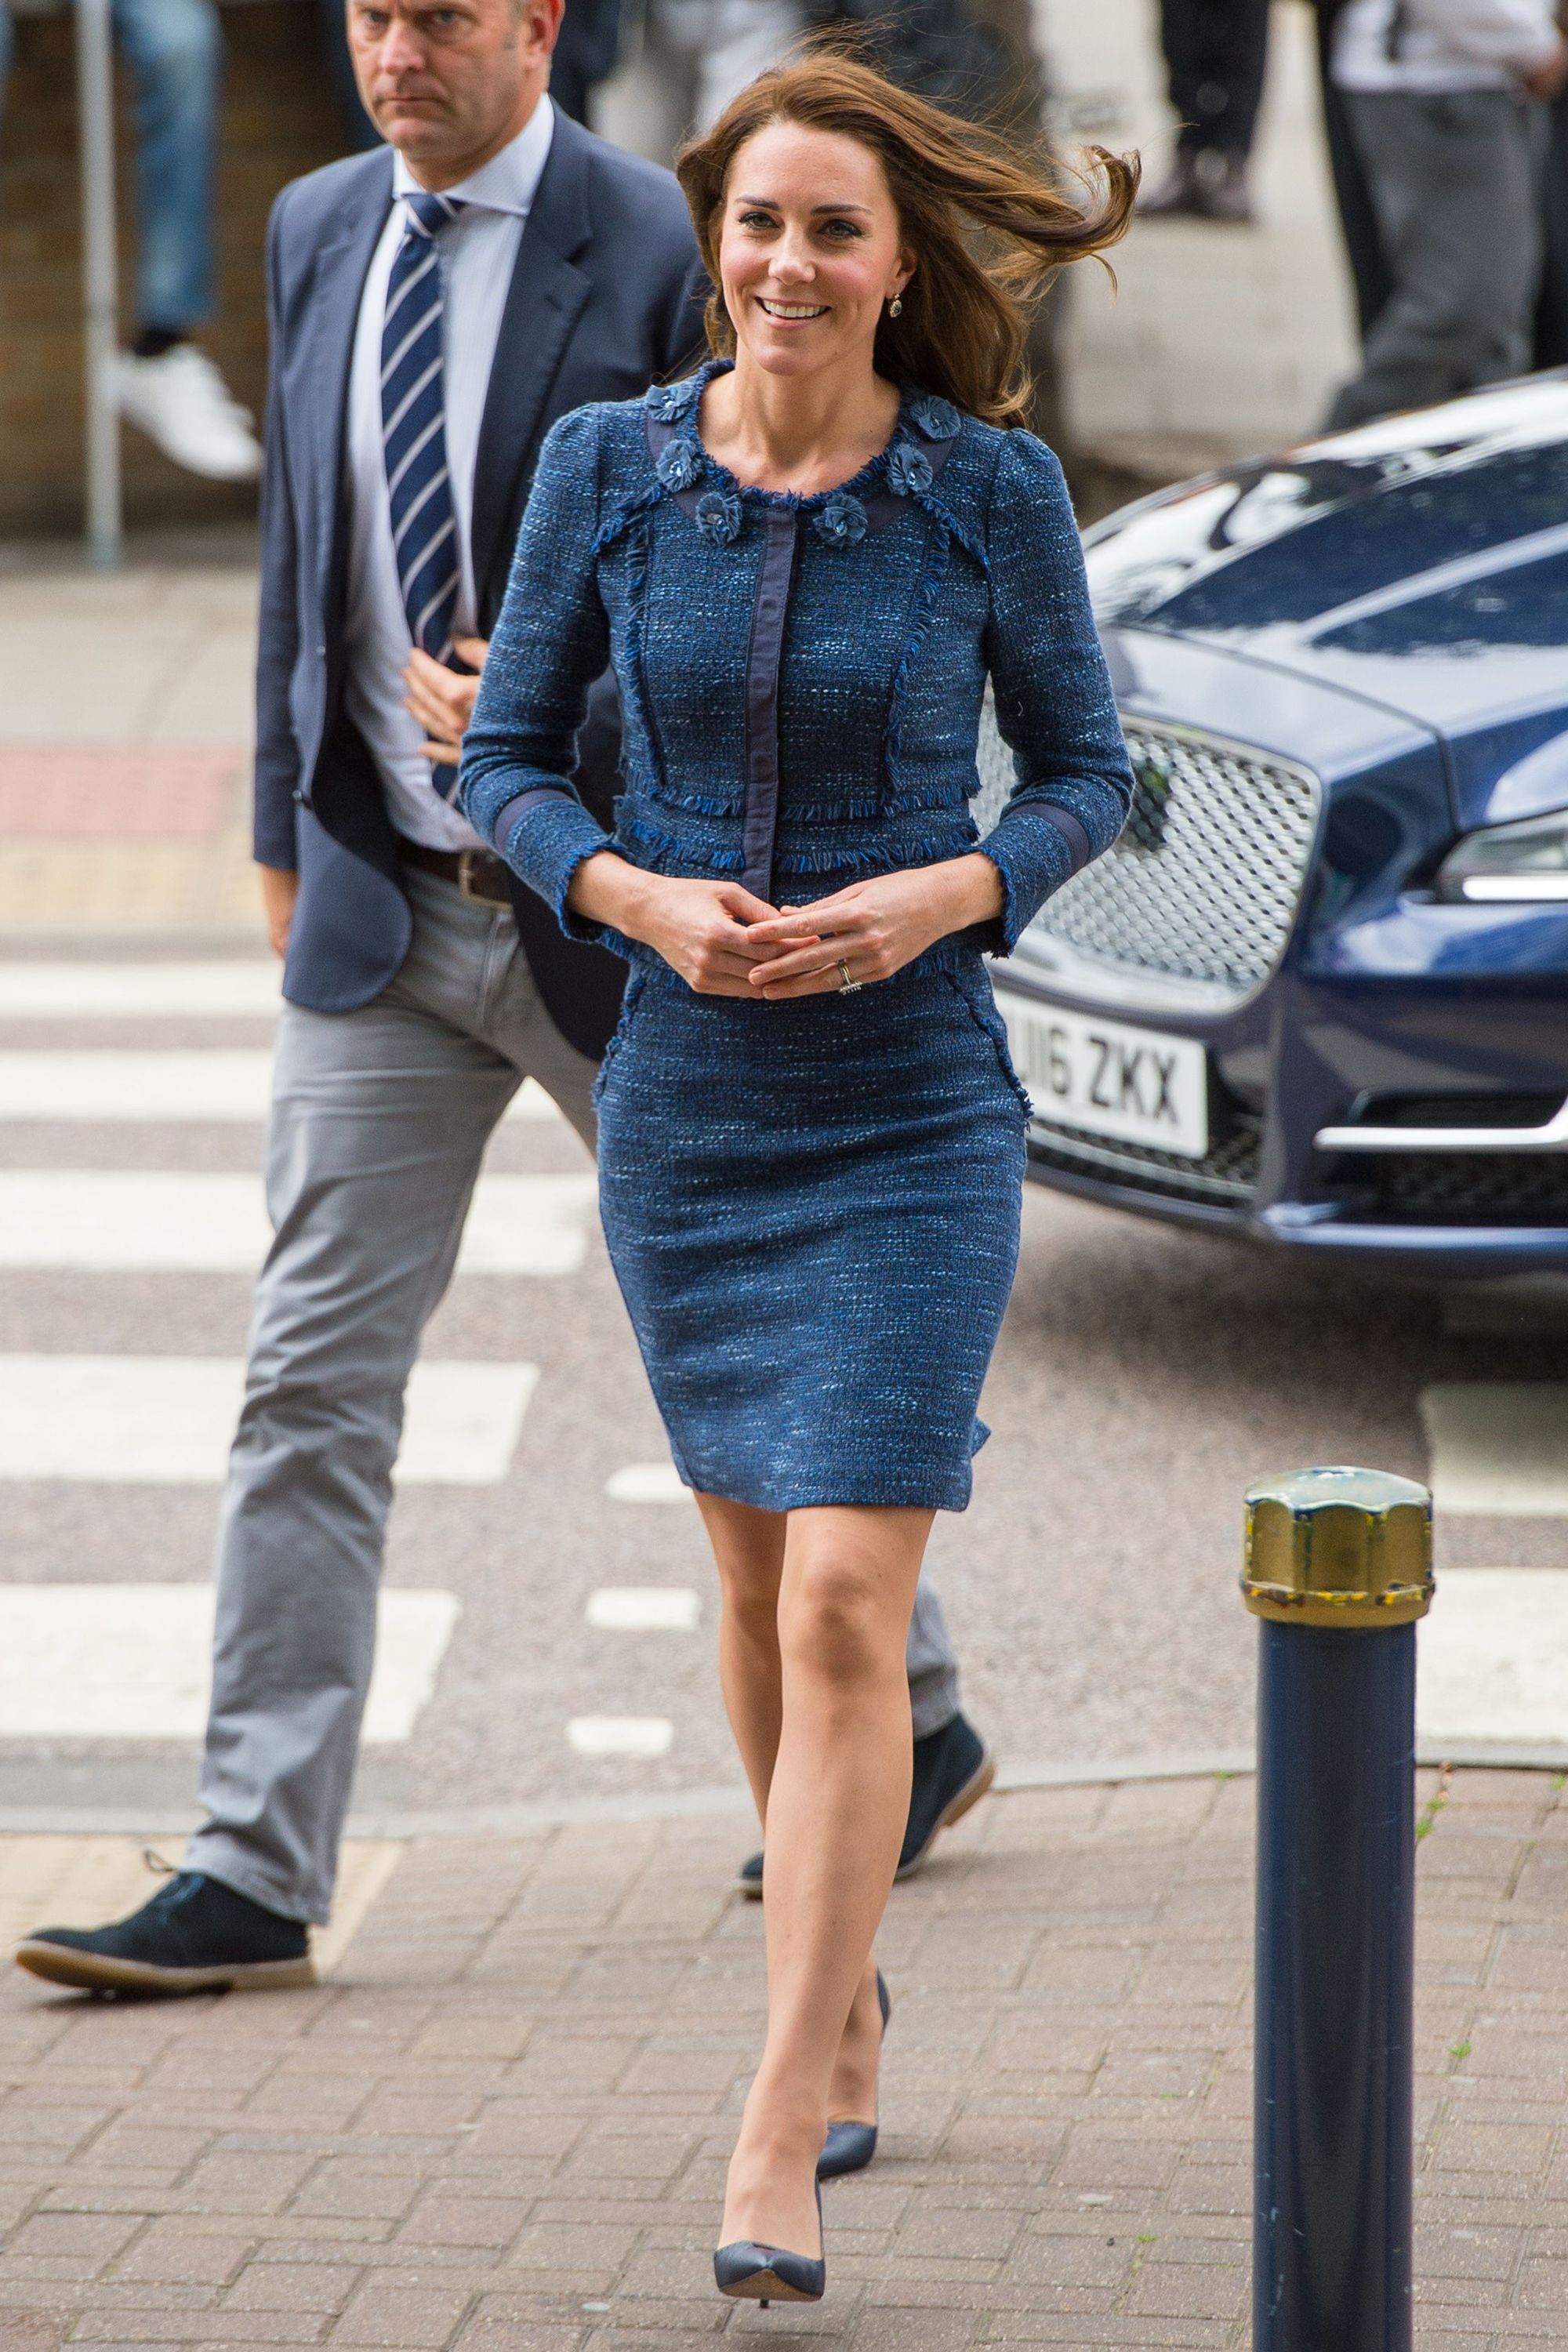 Kate Middleton S Best Style Moments The Ss Of Cambridge Most Fashionable Outfits